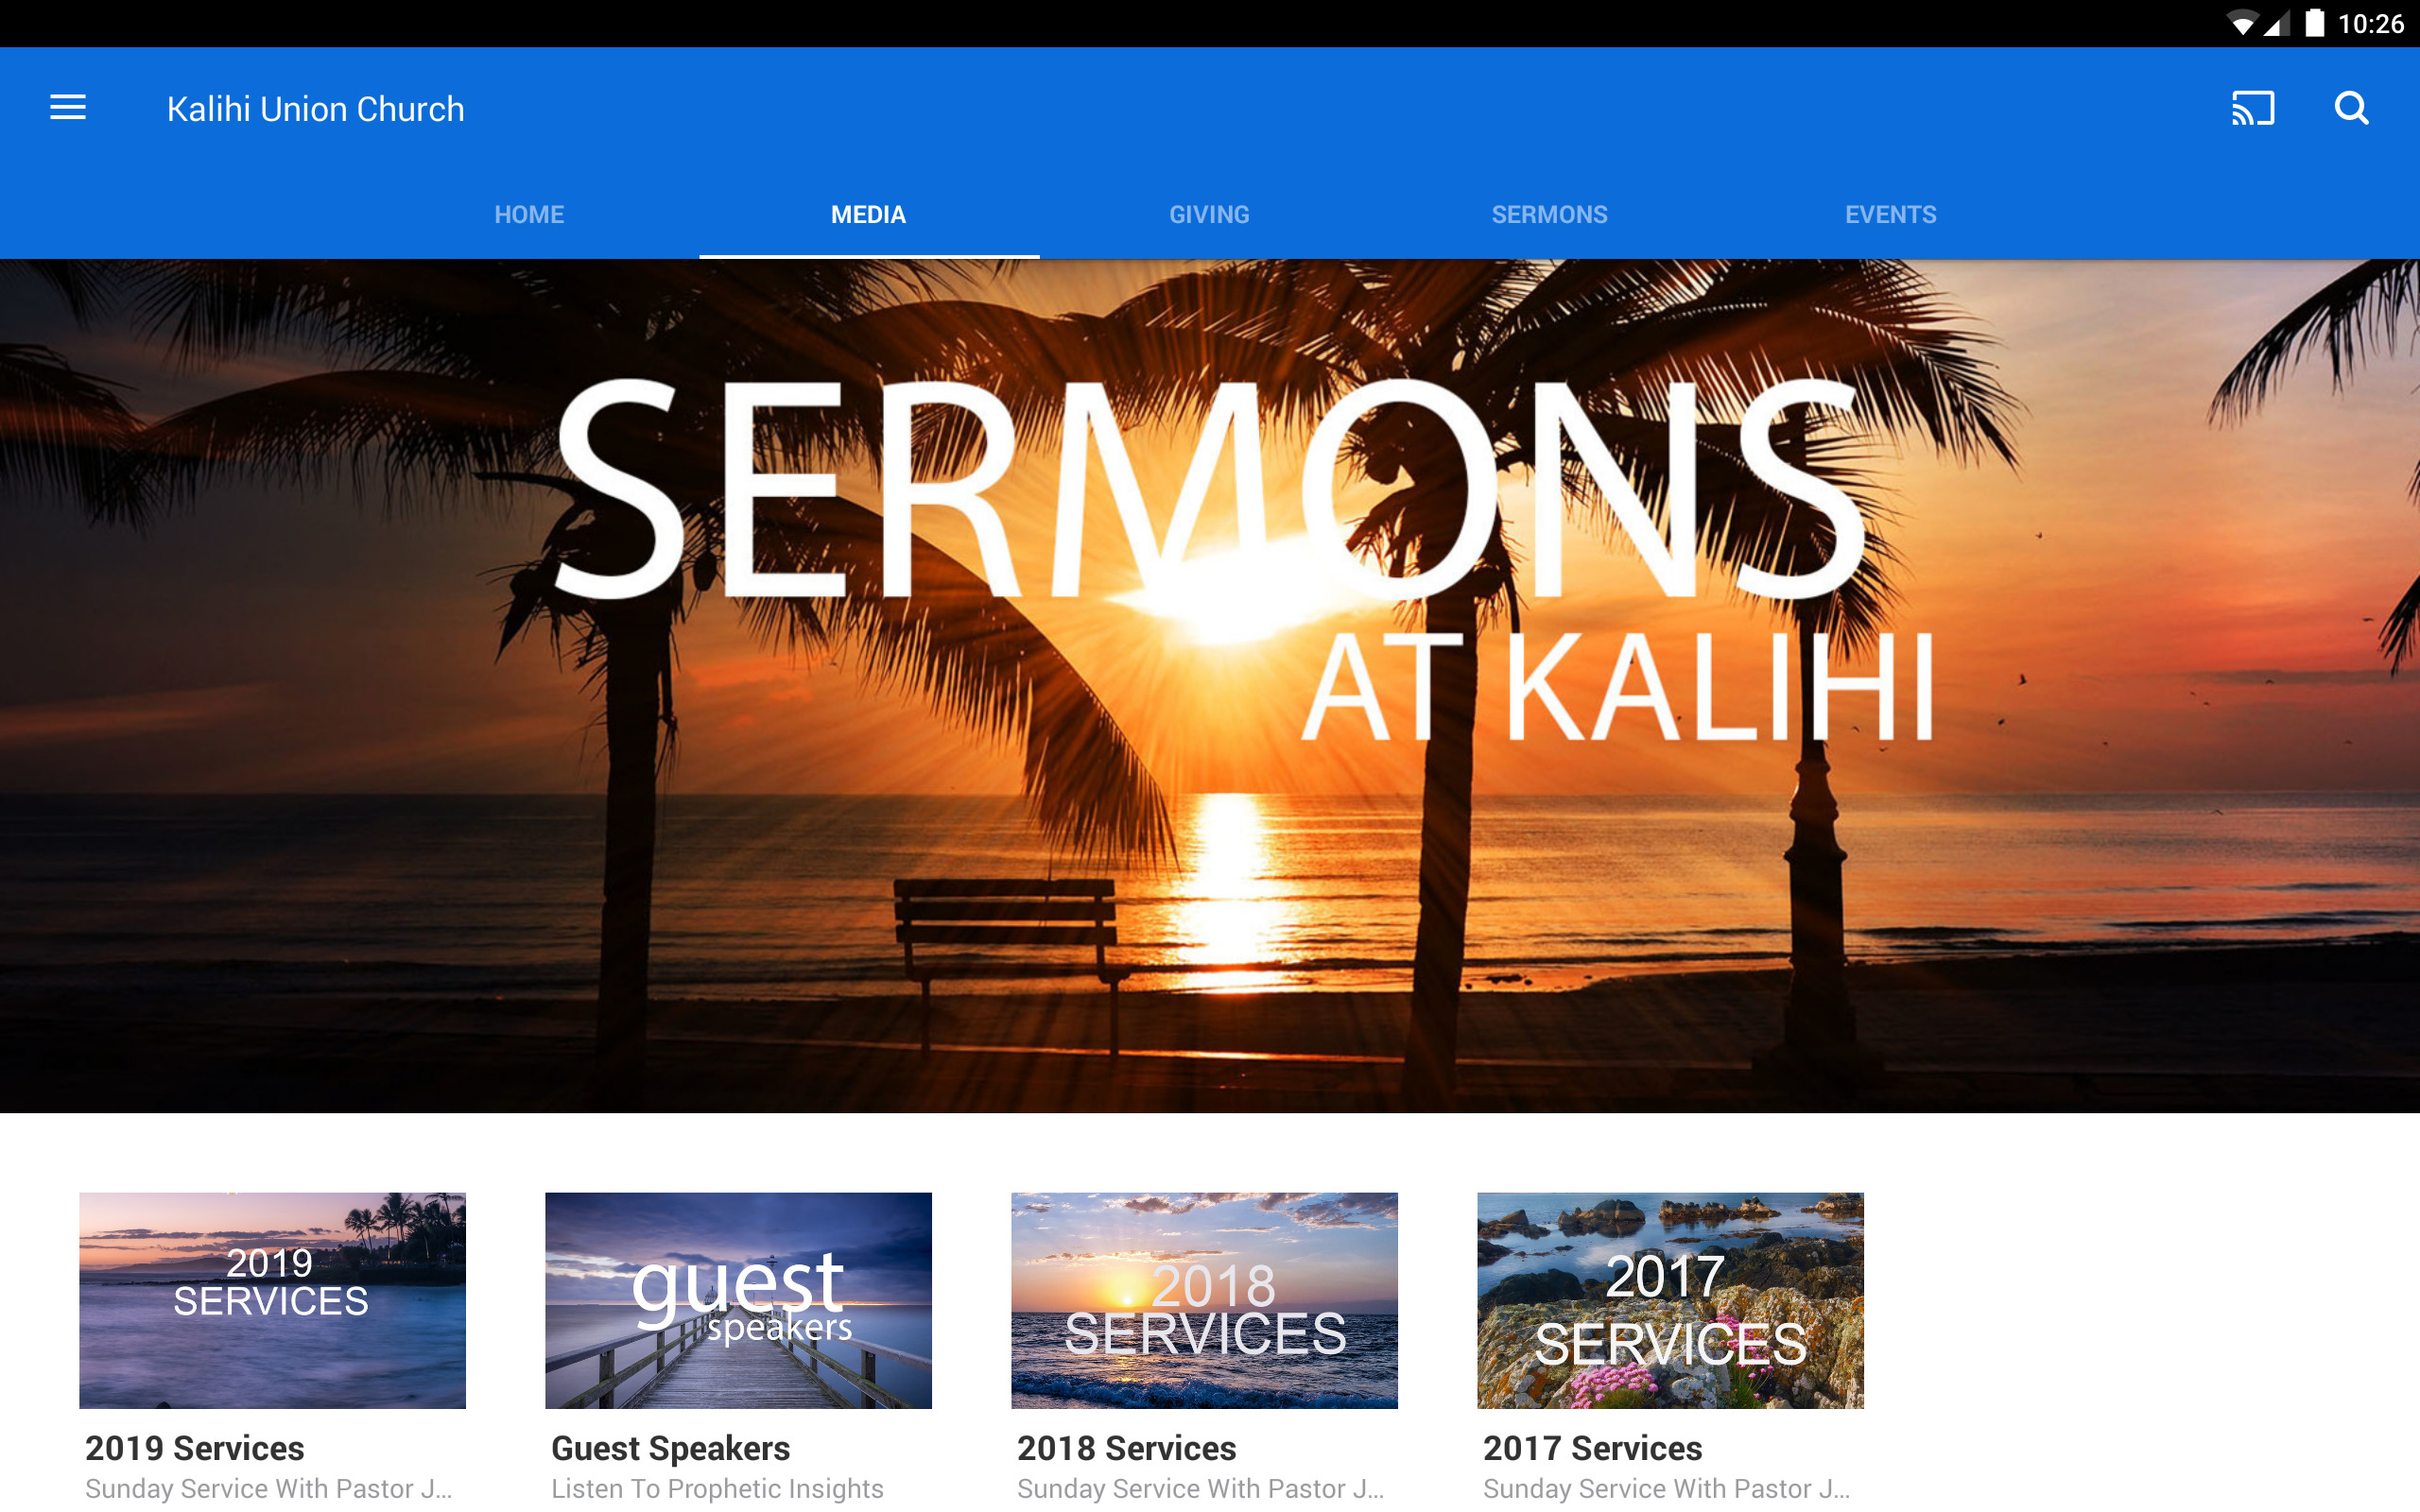 Amazoncom Kalihi Union Church Appstore for Android 2560x1600